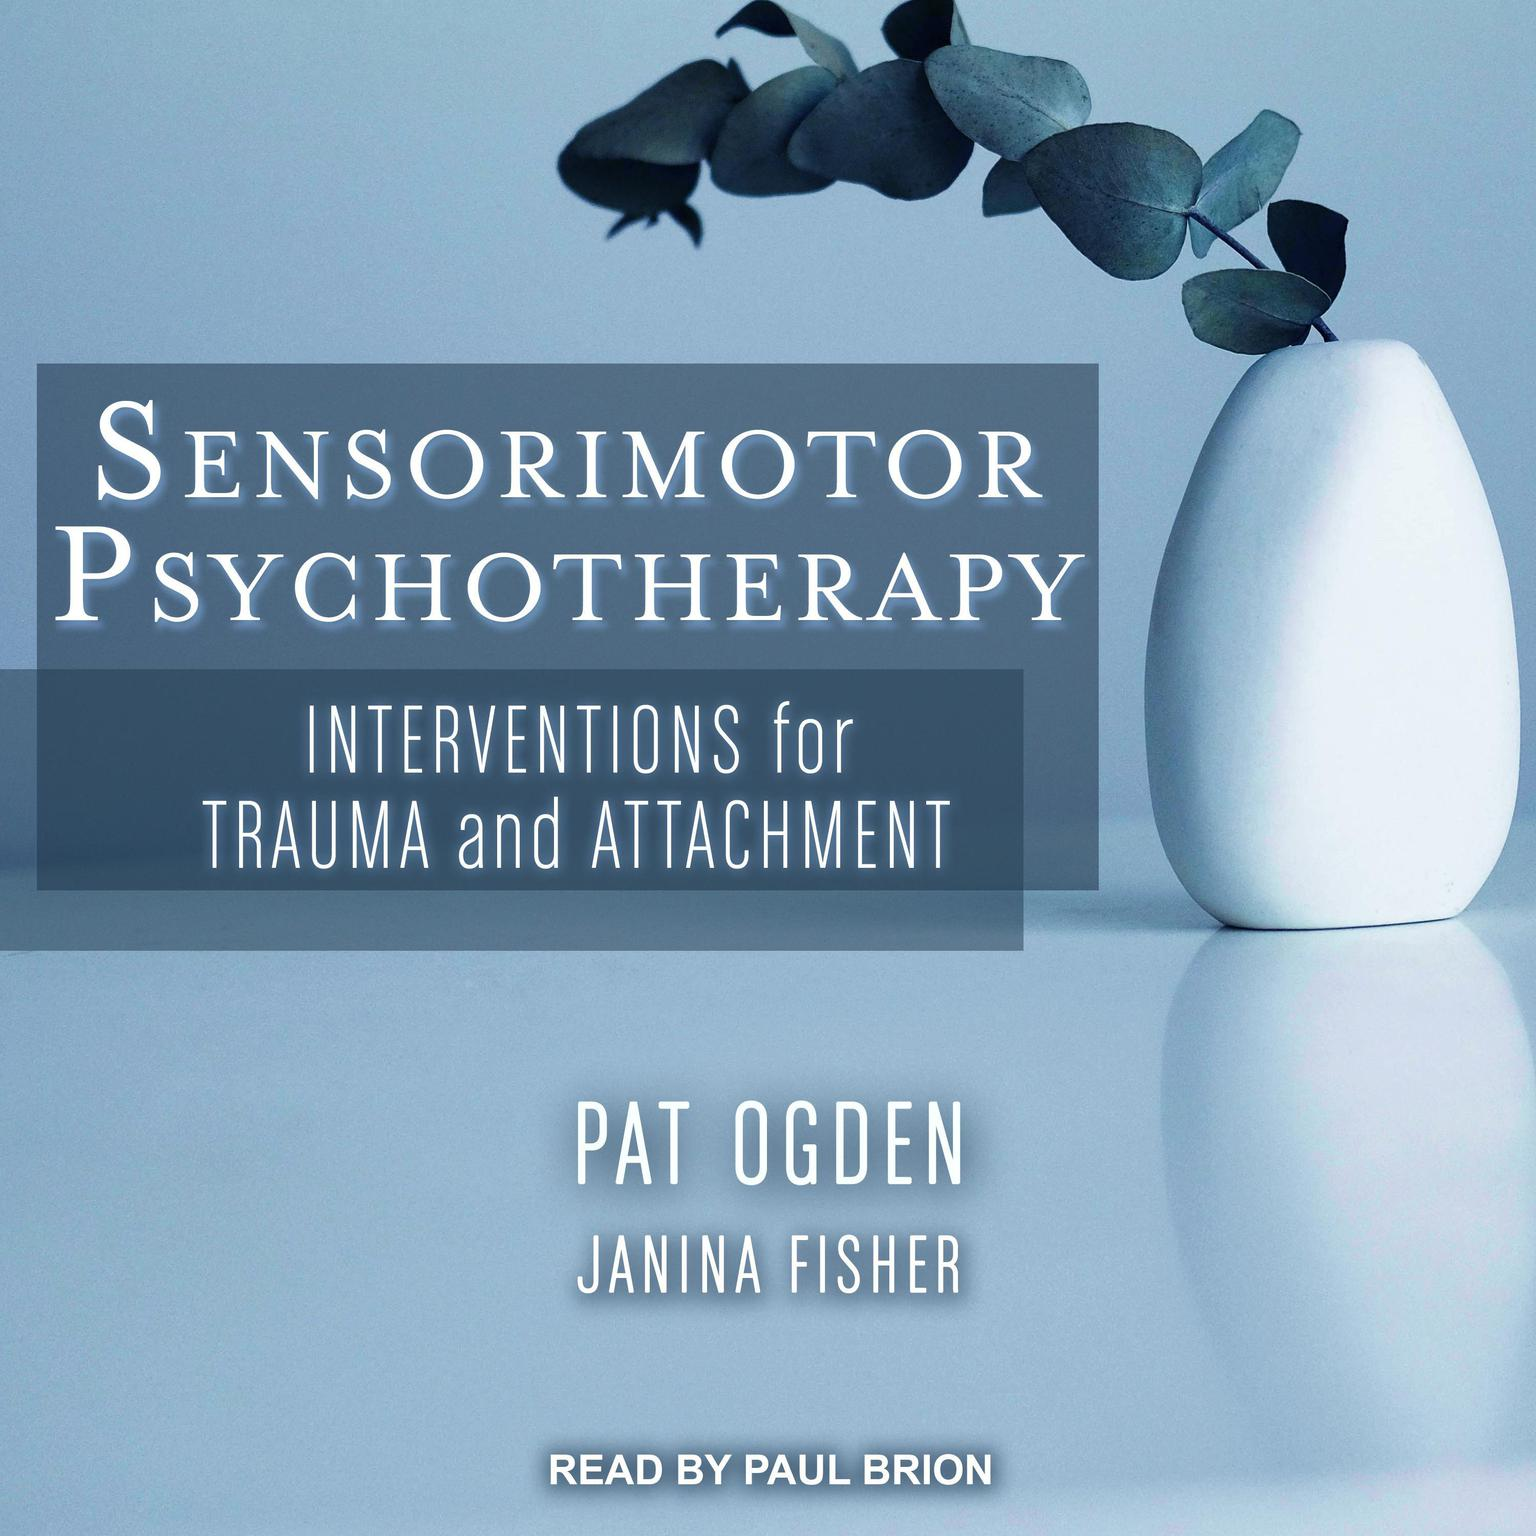 Sensorimotor Psychotherapy: Interventions for Trauma and Attachment Audiobook, by Pat Ogden